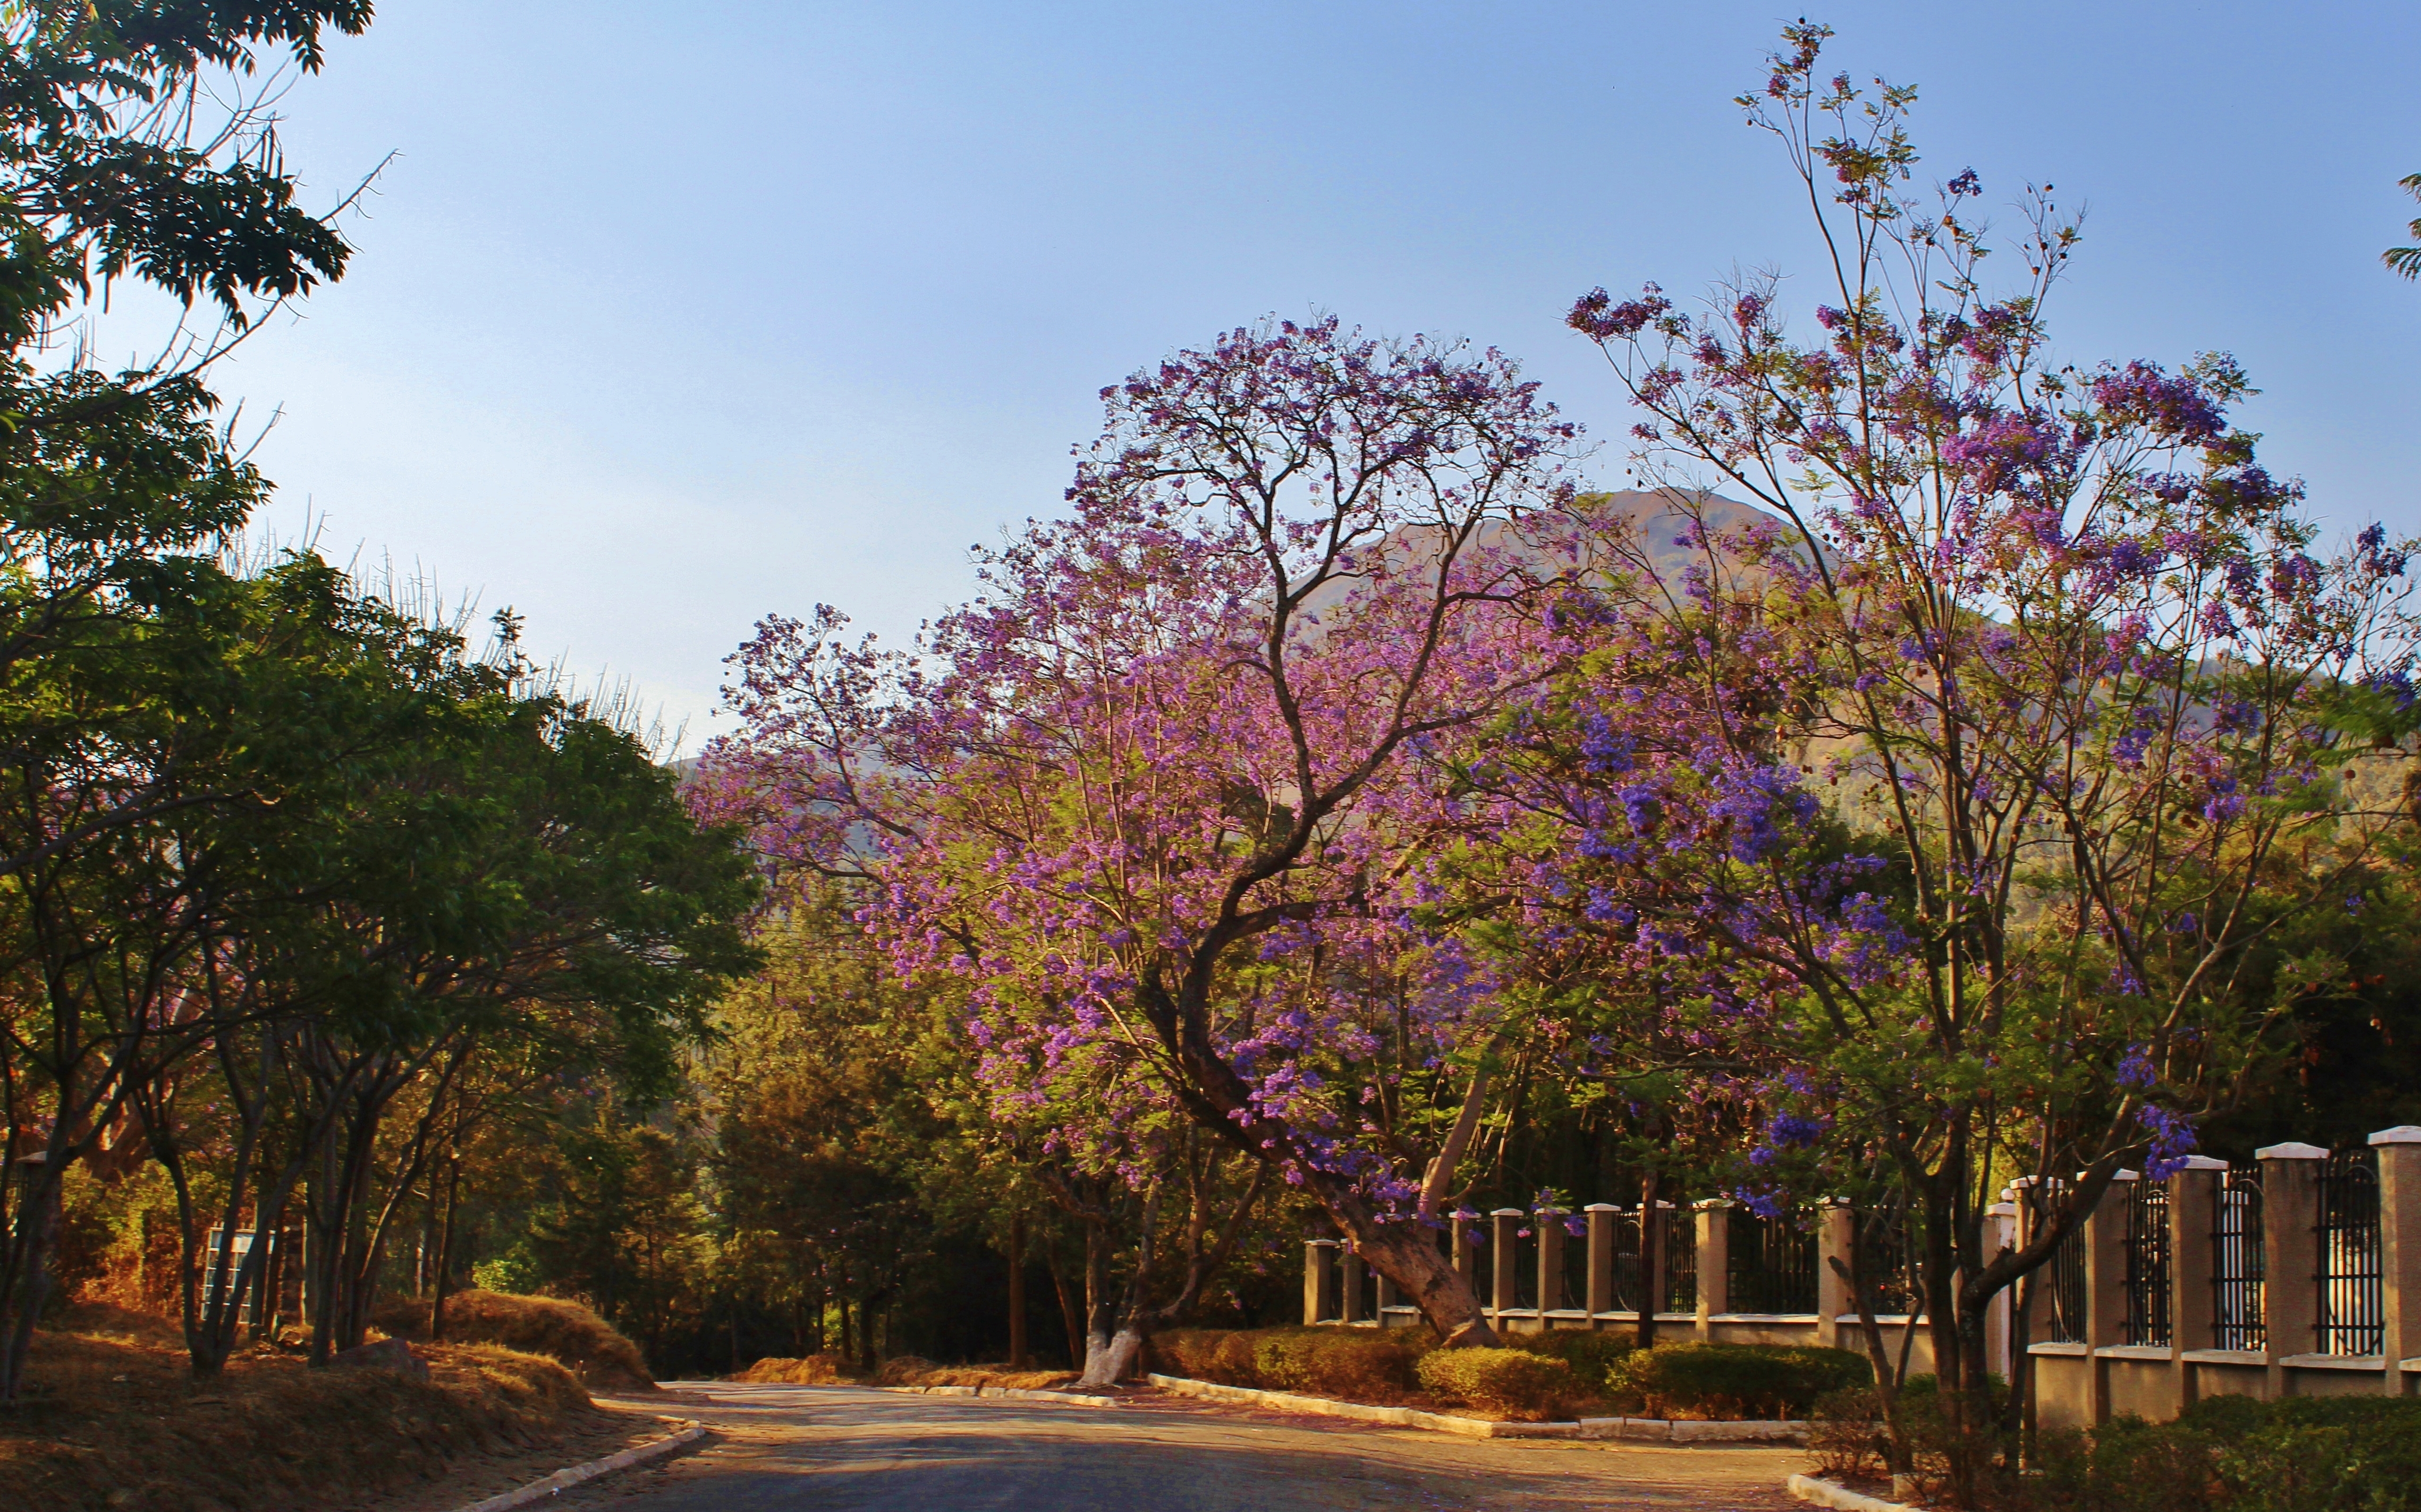 Mbeya's trees blooming bright purple